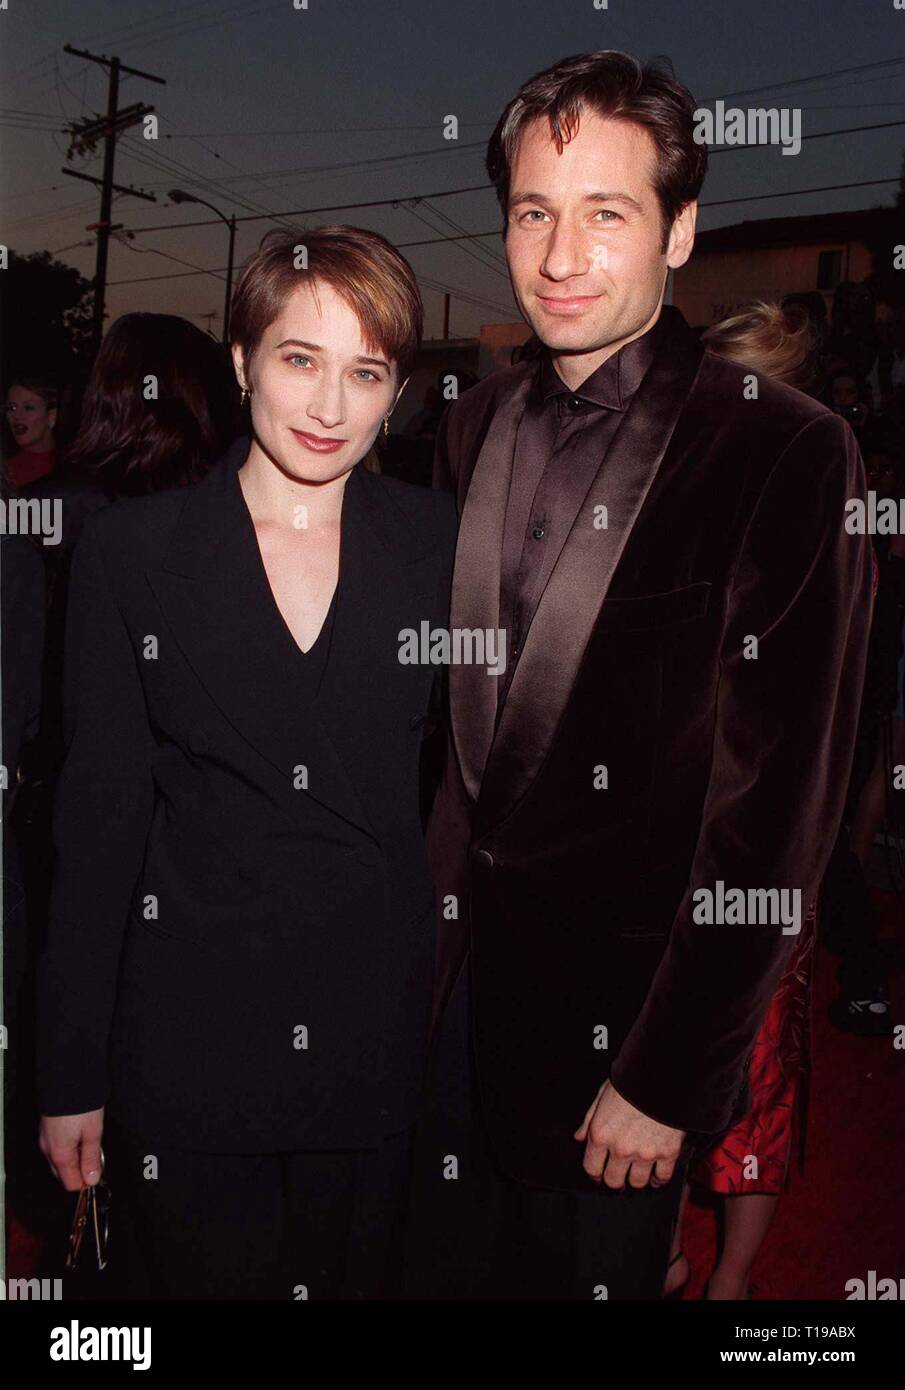 LOS ANGELES, CA. February 22, 1997:  X-Files star DAVID DUCHOVNY & sister at the Screen Actors Guild Awards  in Los Angeles. Pix: PAUL SMITH - Stock Image